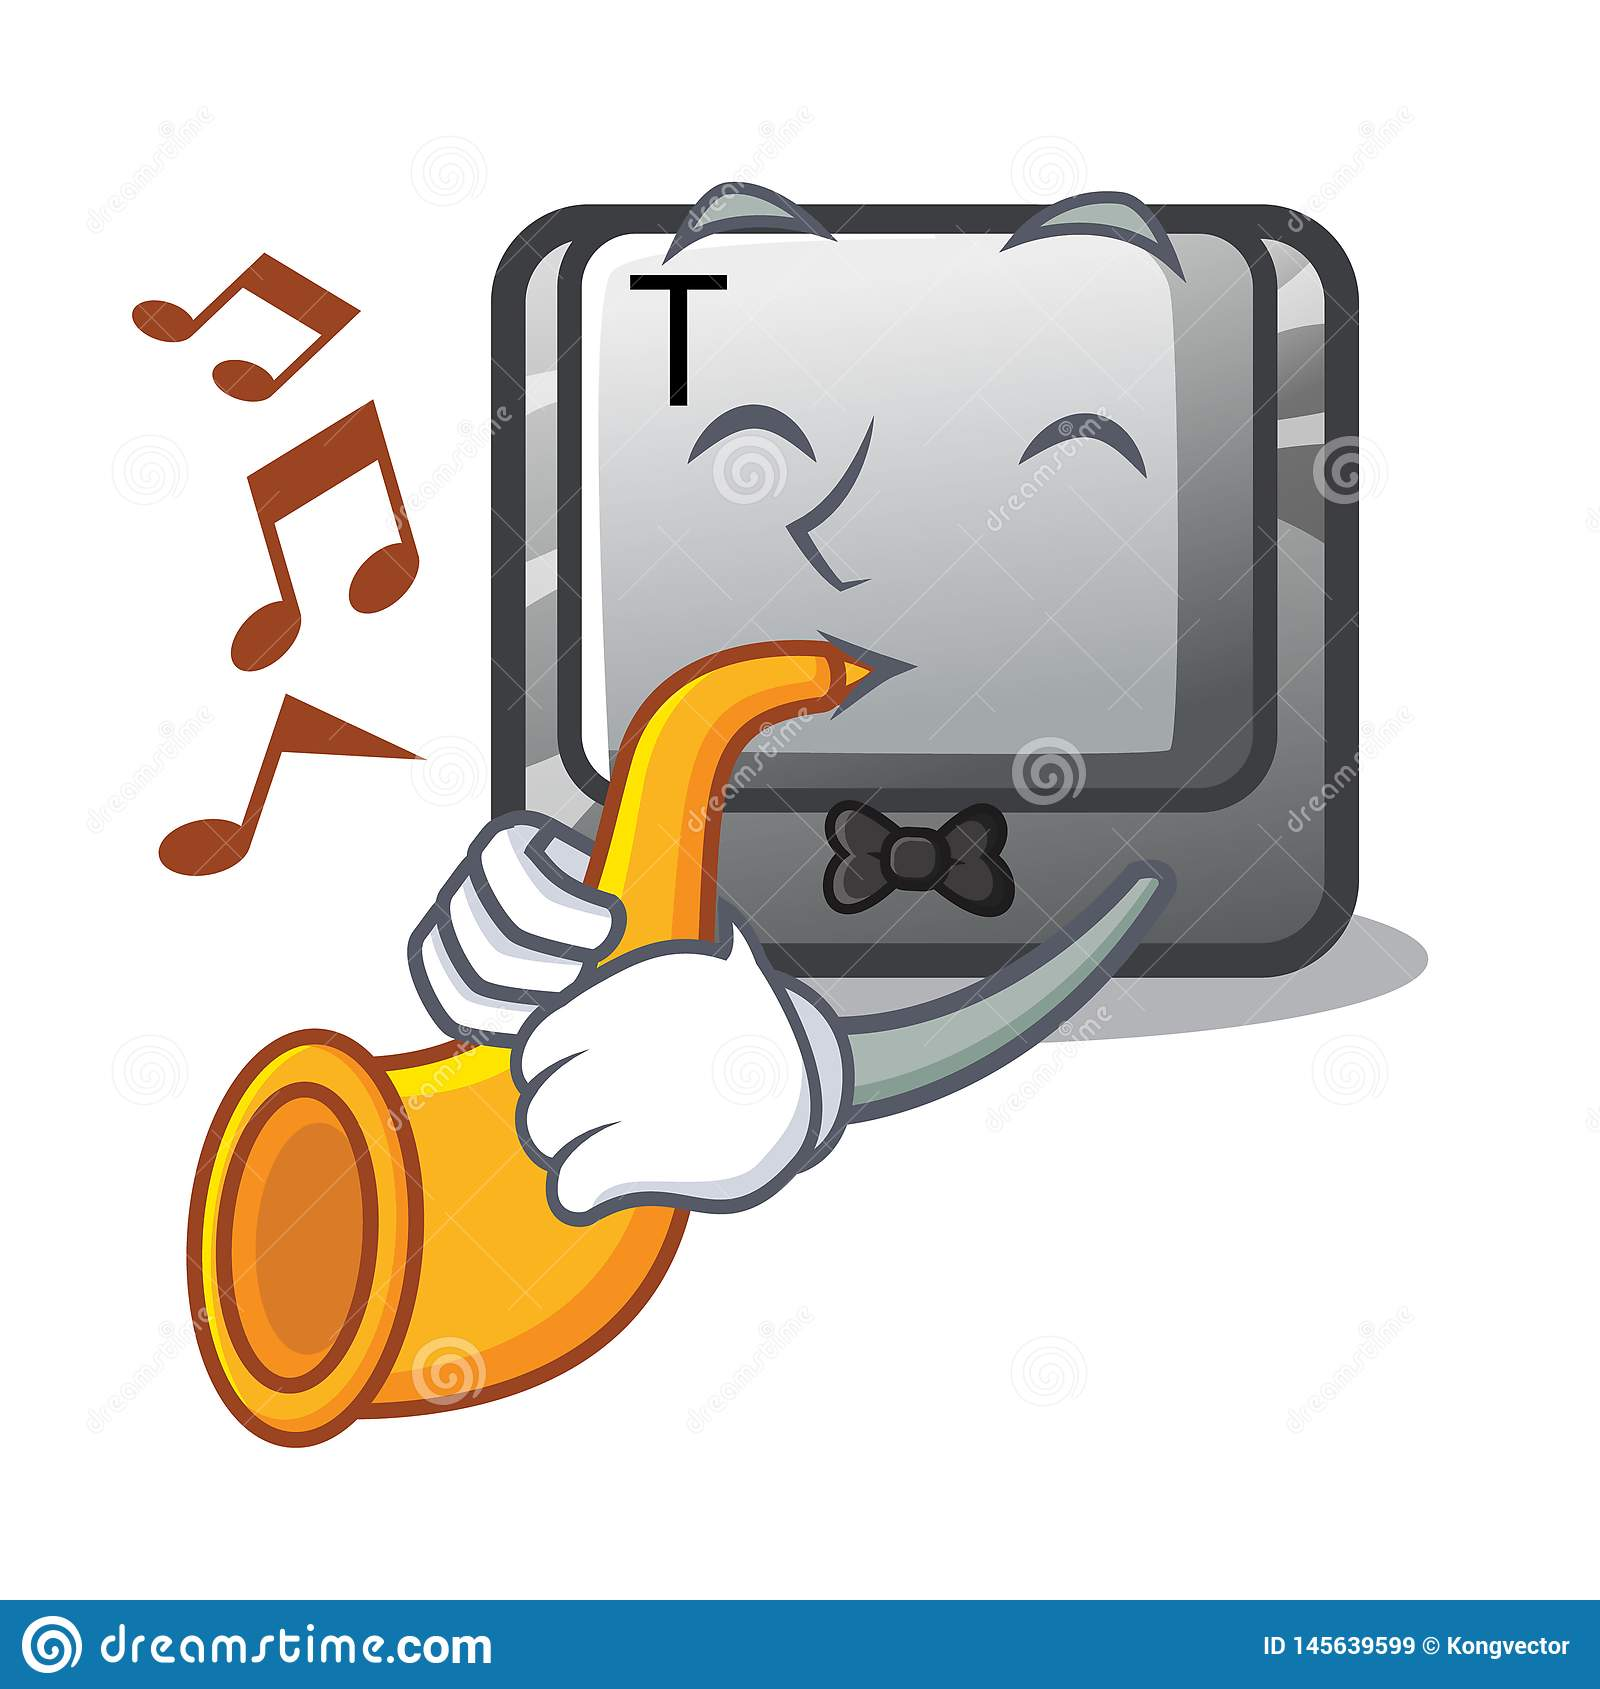 With trumpet button T in the keyboard cartoon